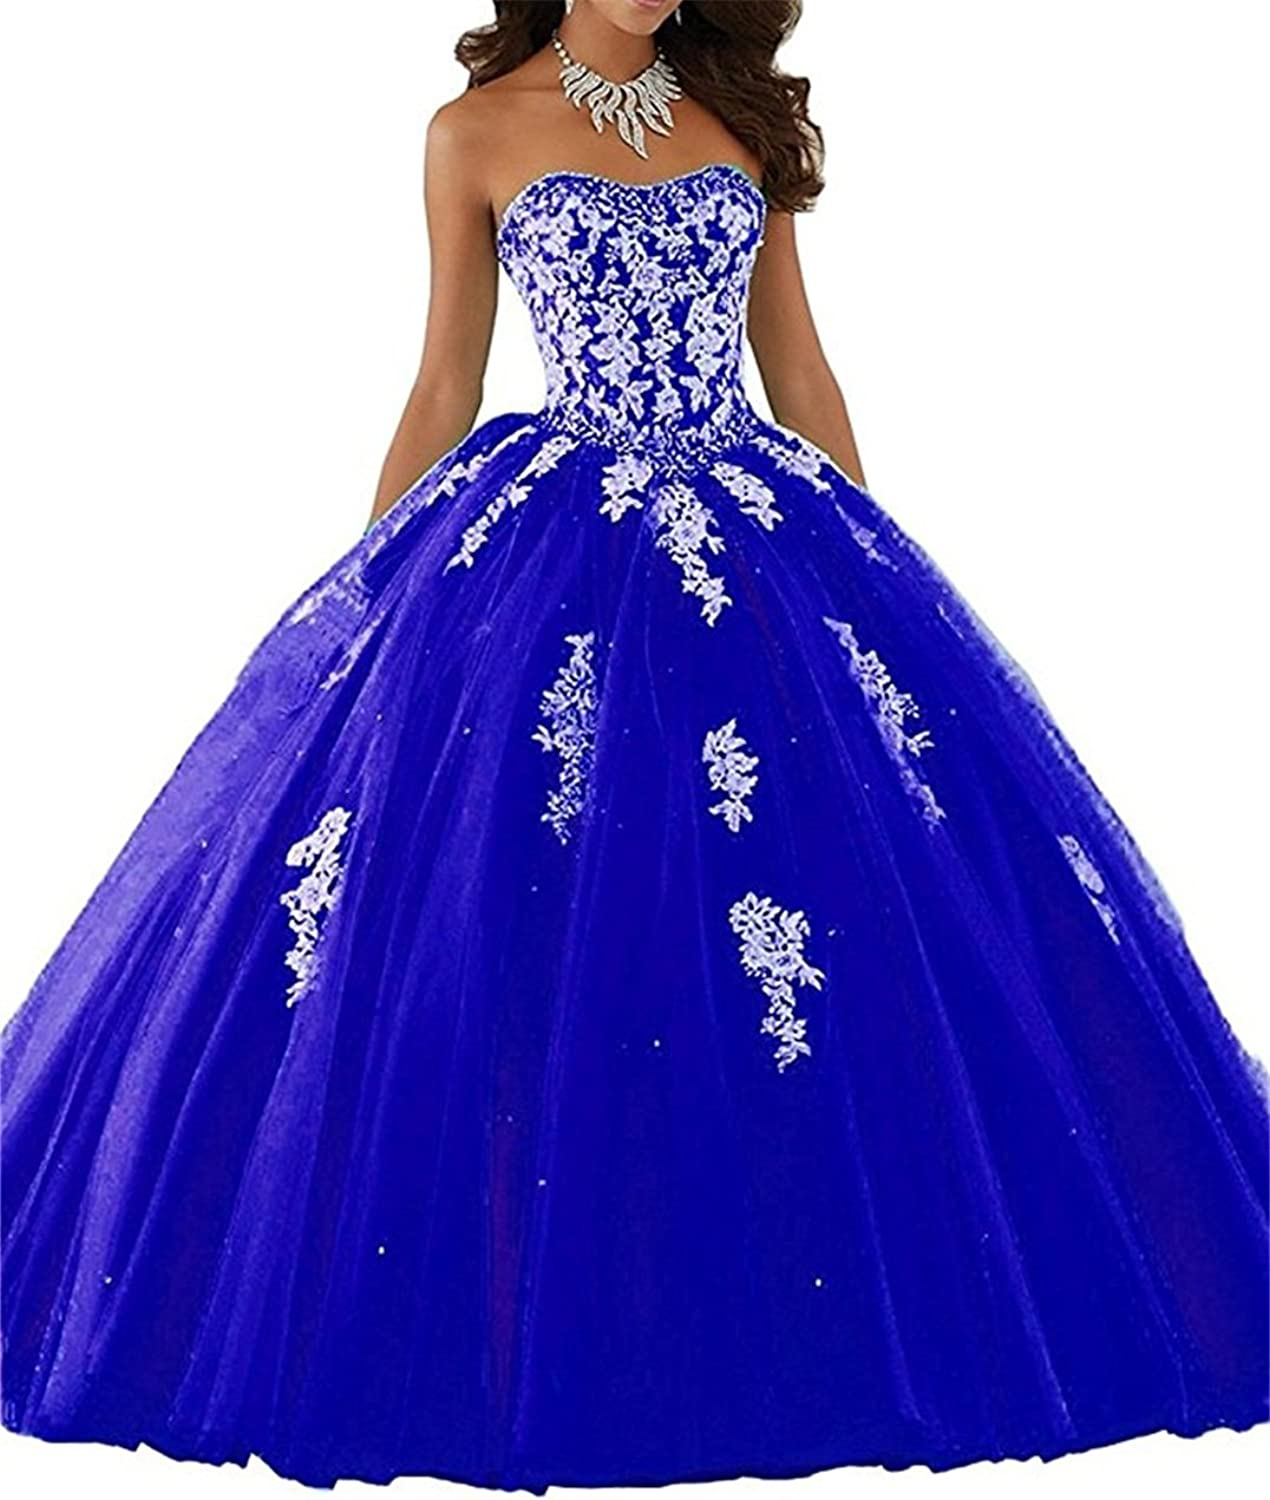 XYHDTQ Women's Applique Floor Length Beaded Tulle Ball Gown Quinceanera Dress Prom Dresses